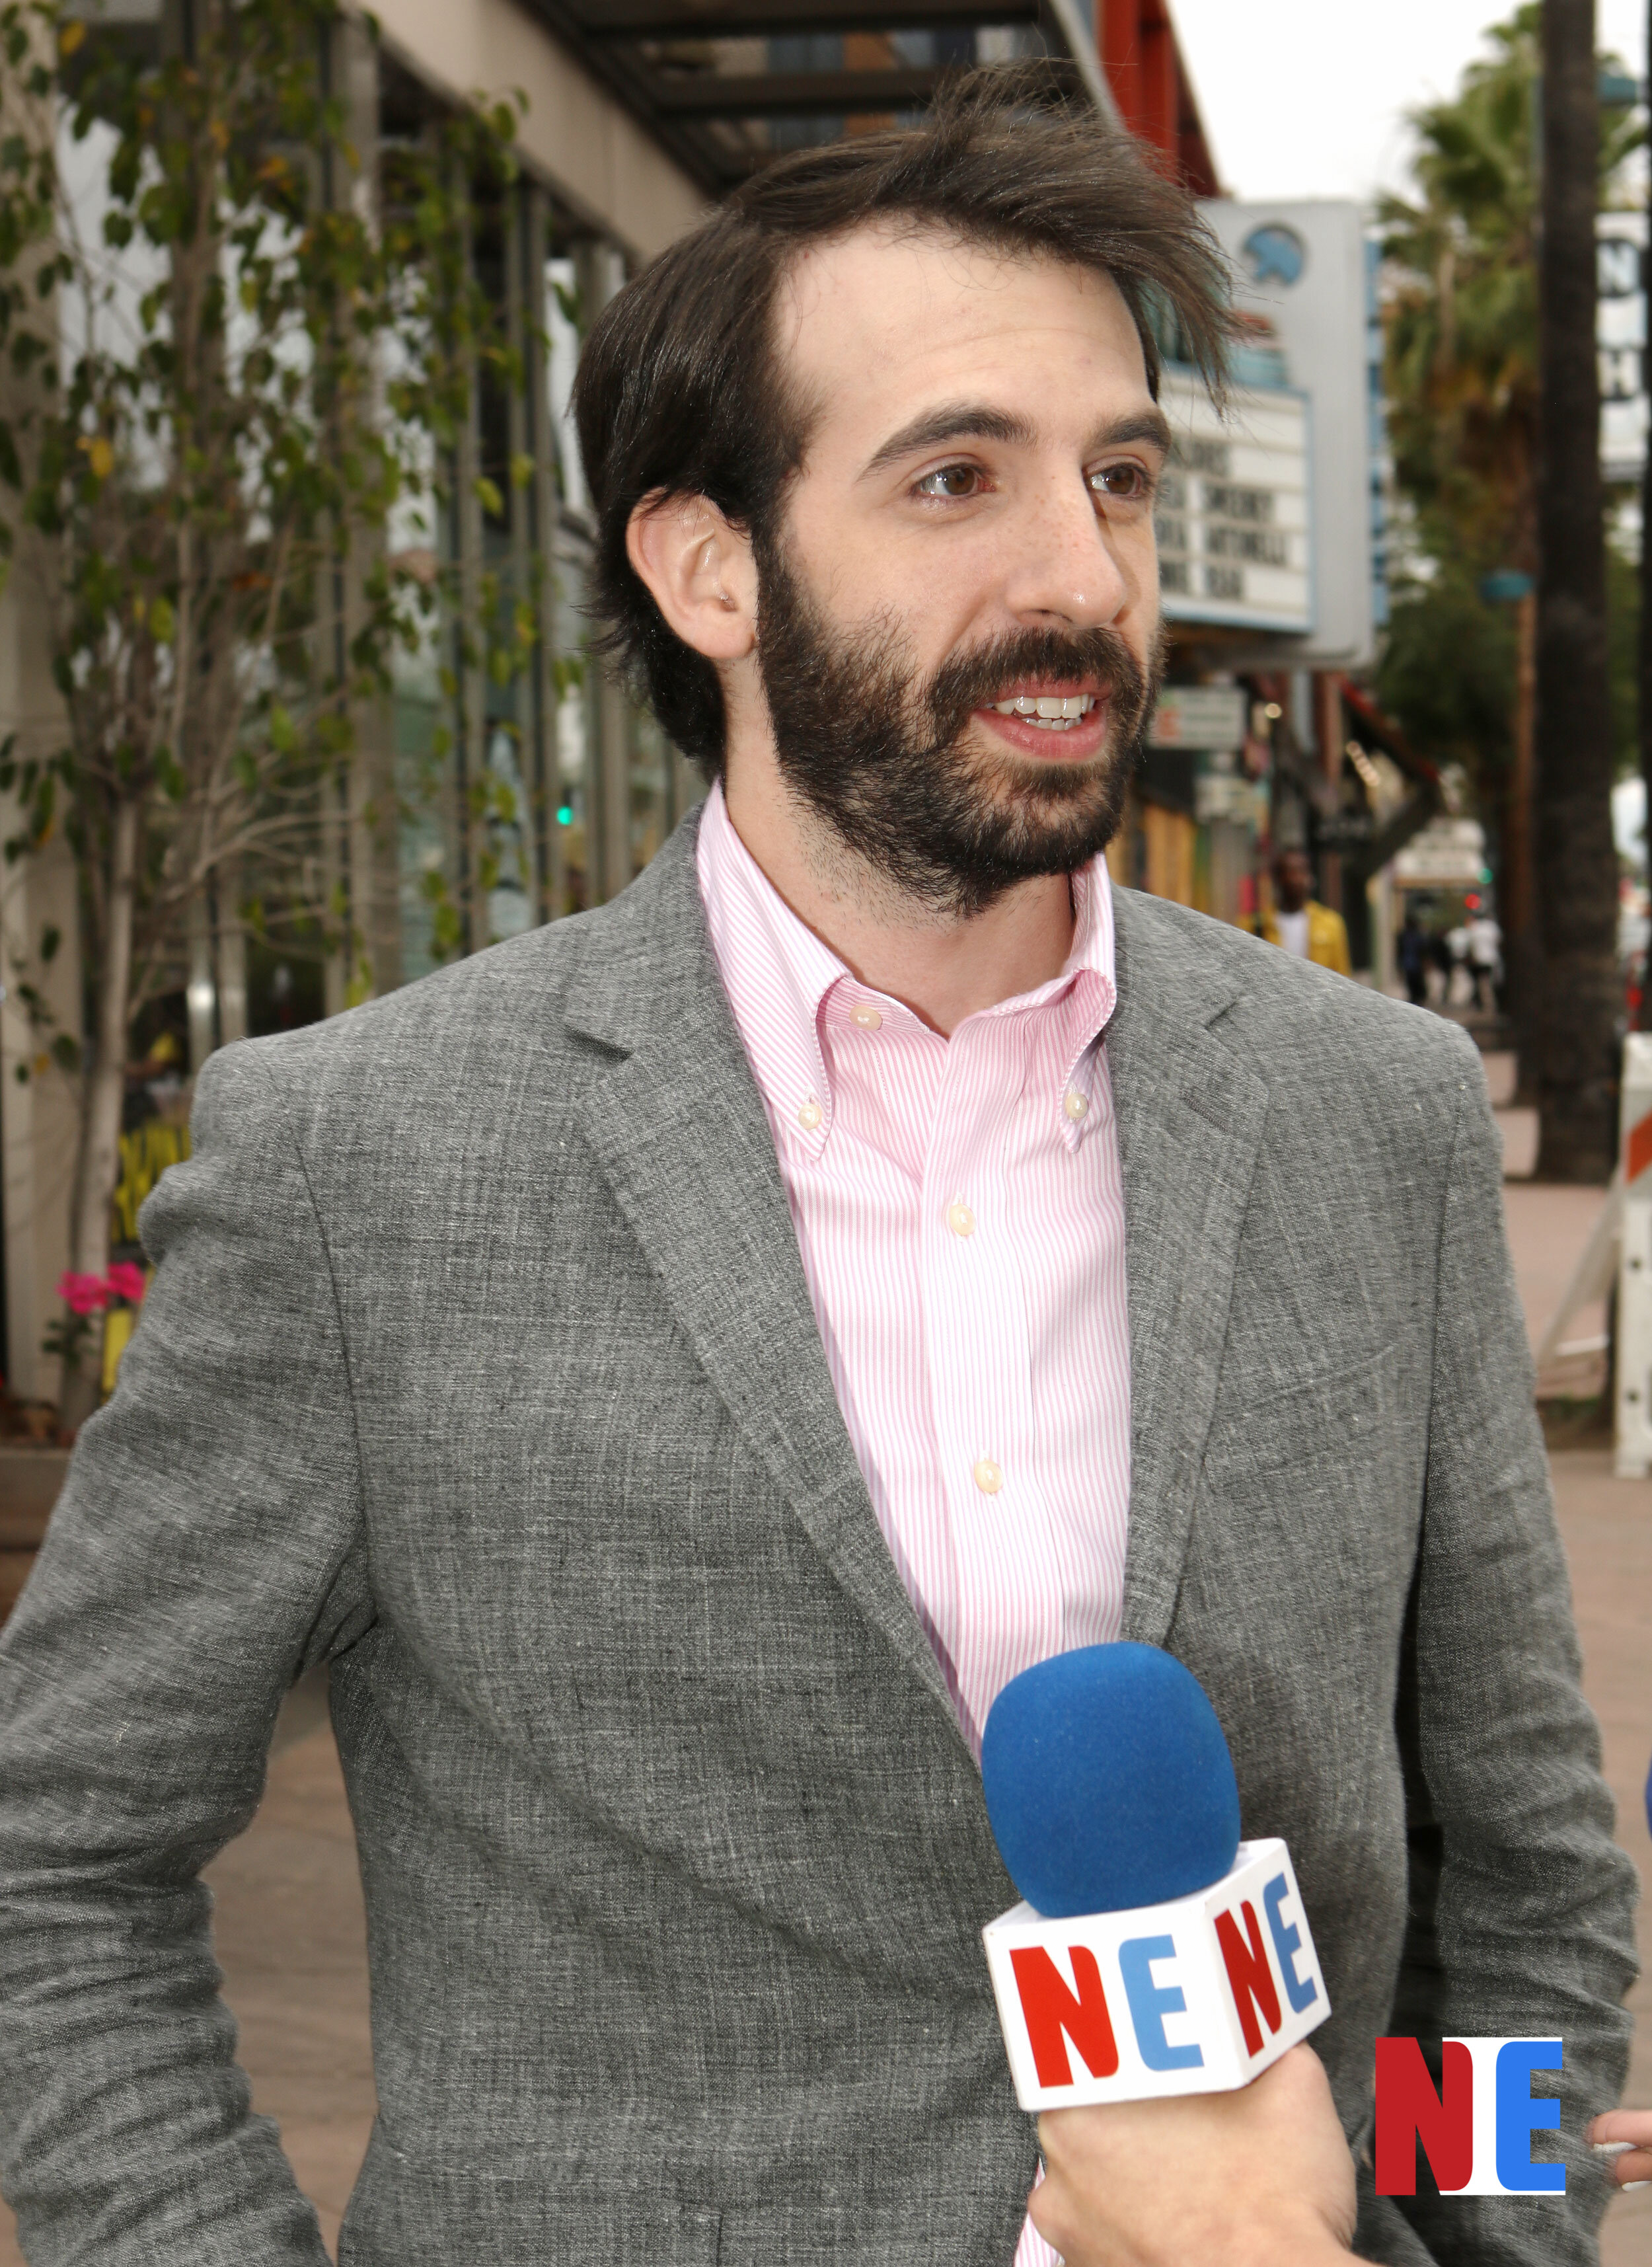 Sean A. Kaufman being interviewed on the streets of Hollywood on June 21, 2019    Courtesy of NIE